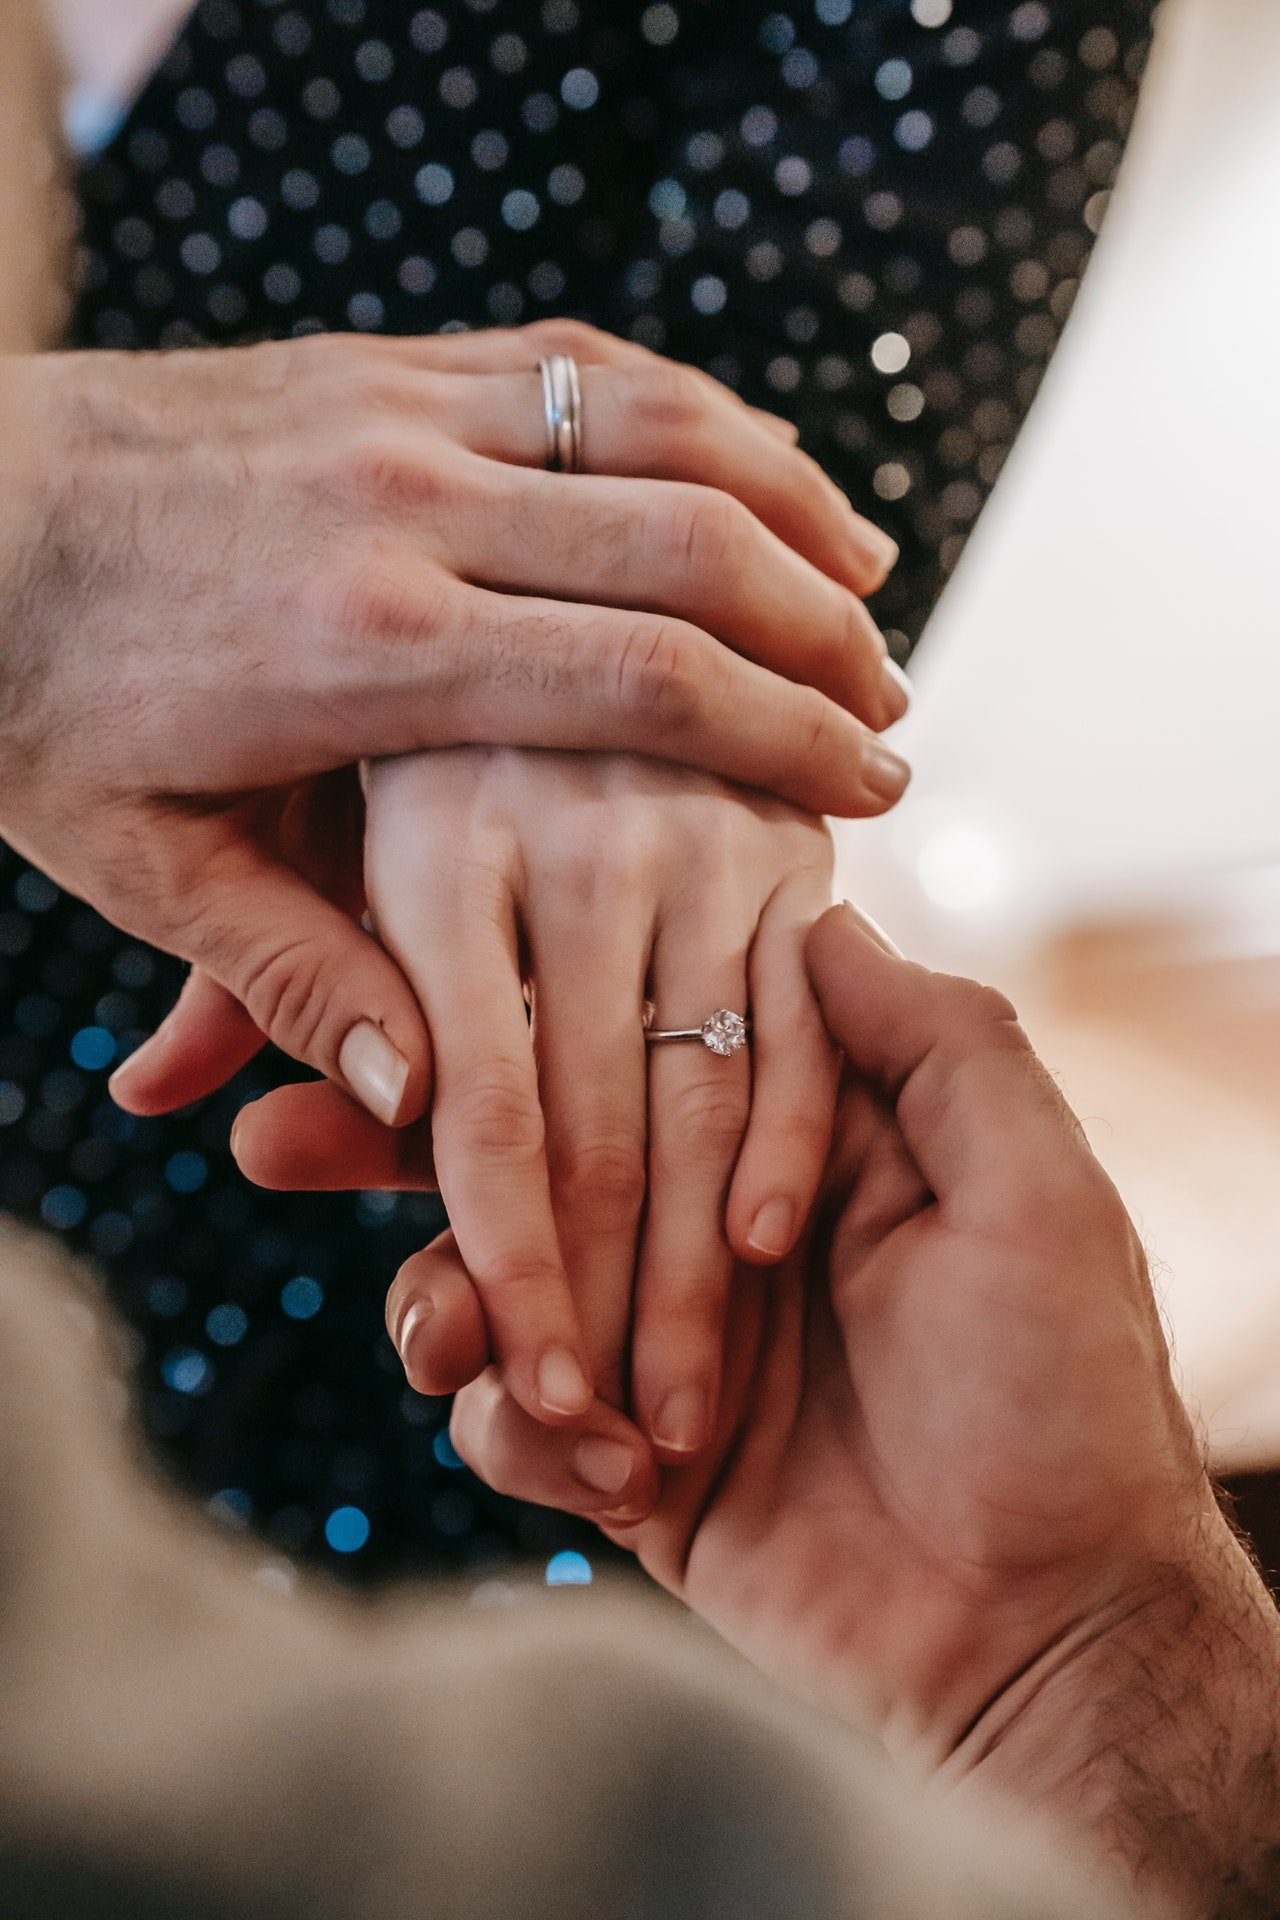 Man holding woman's hand | Source: Pexels